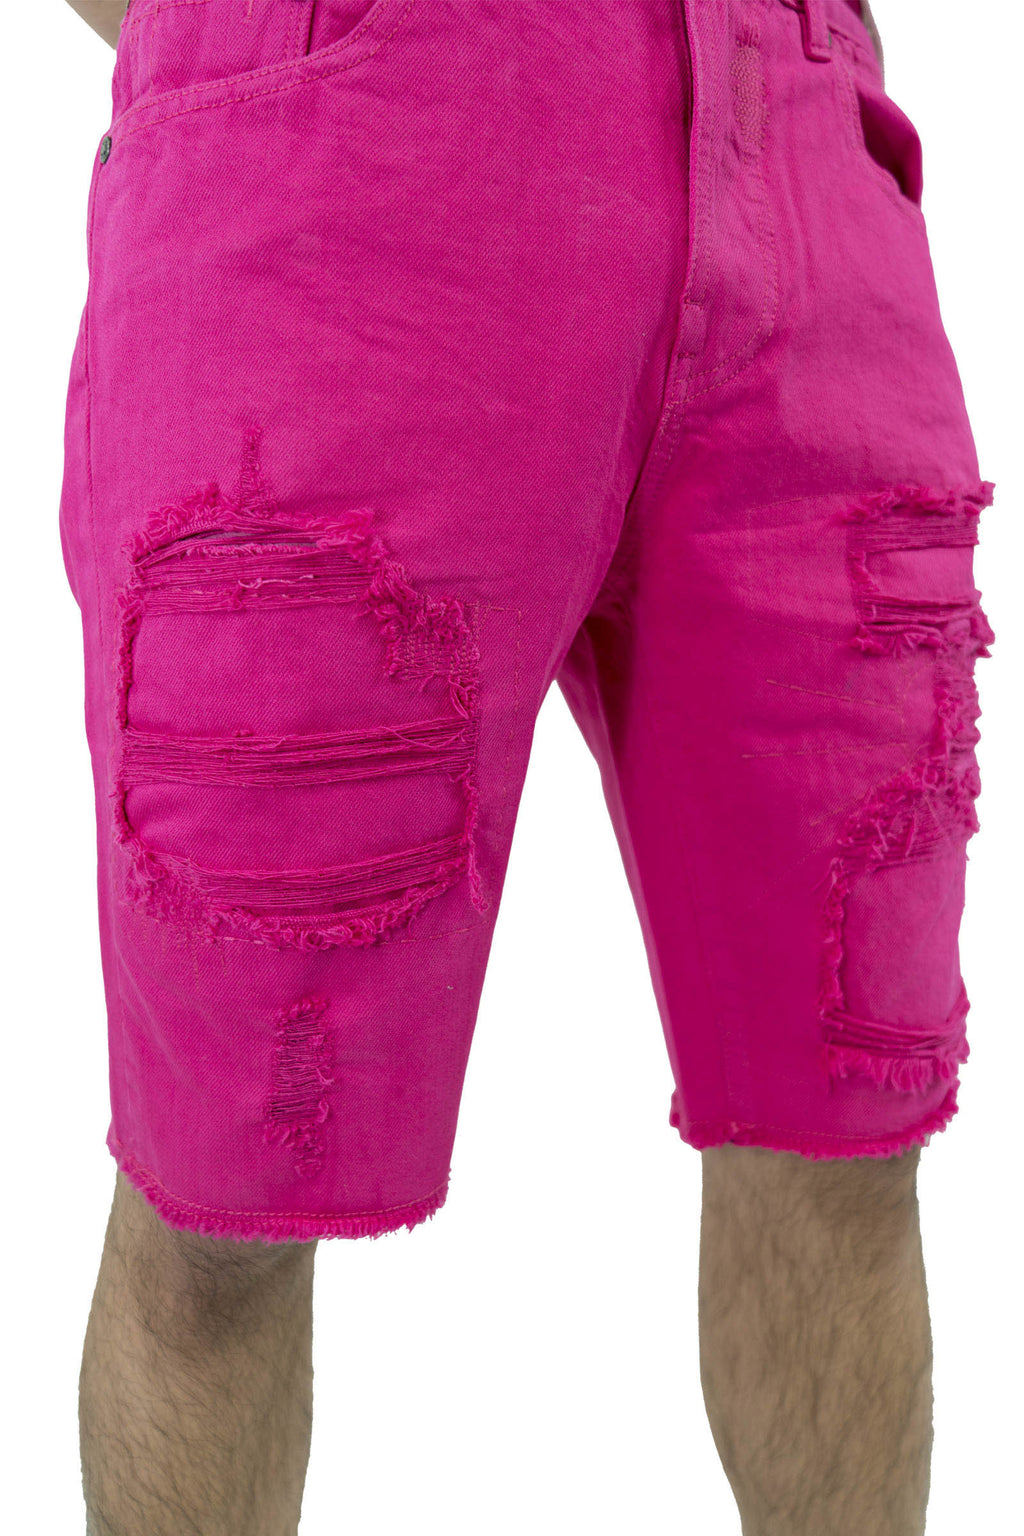 Cape Verde Denim Shorts - Shorts - Born Fly